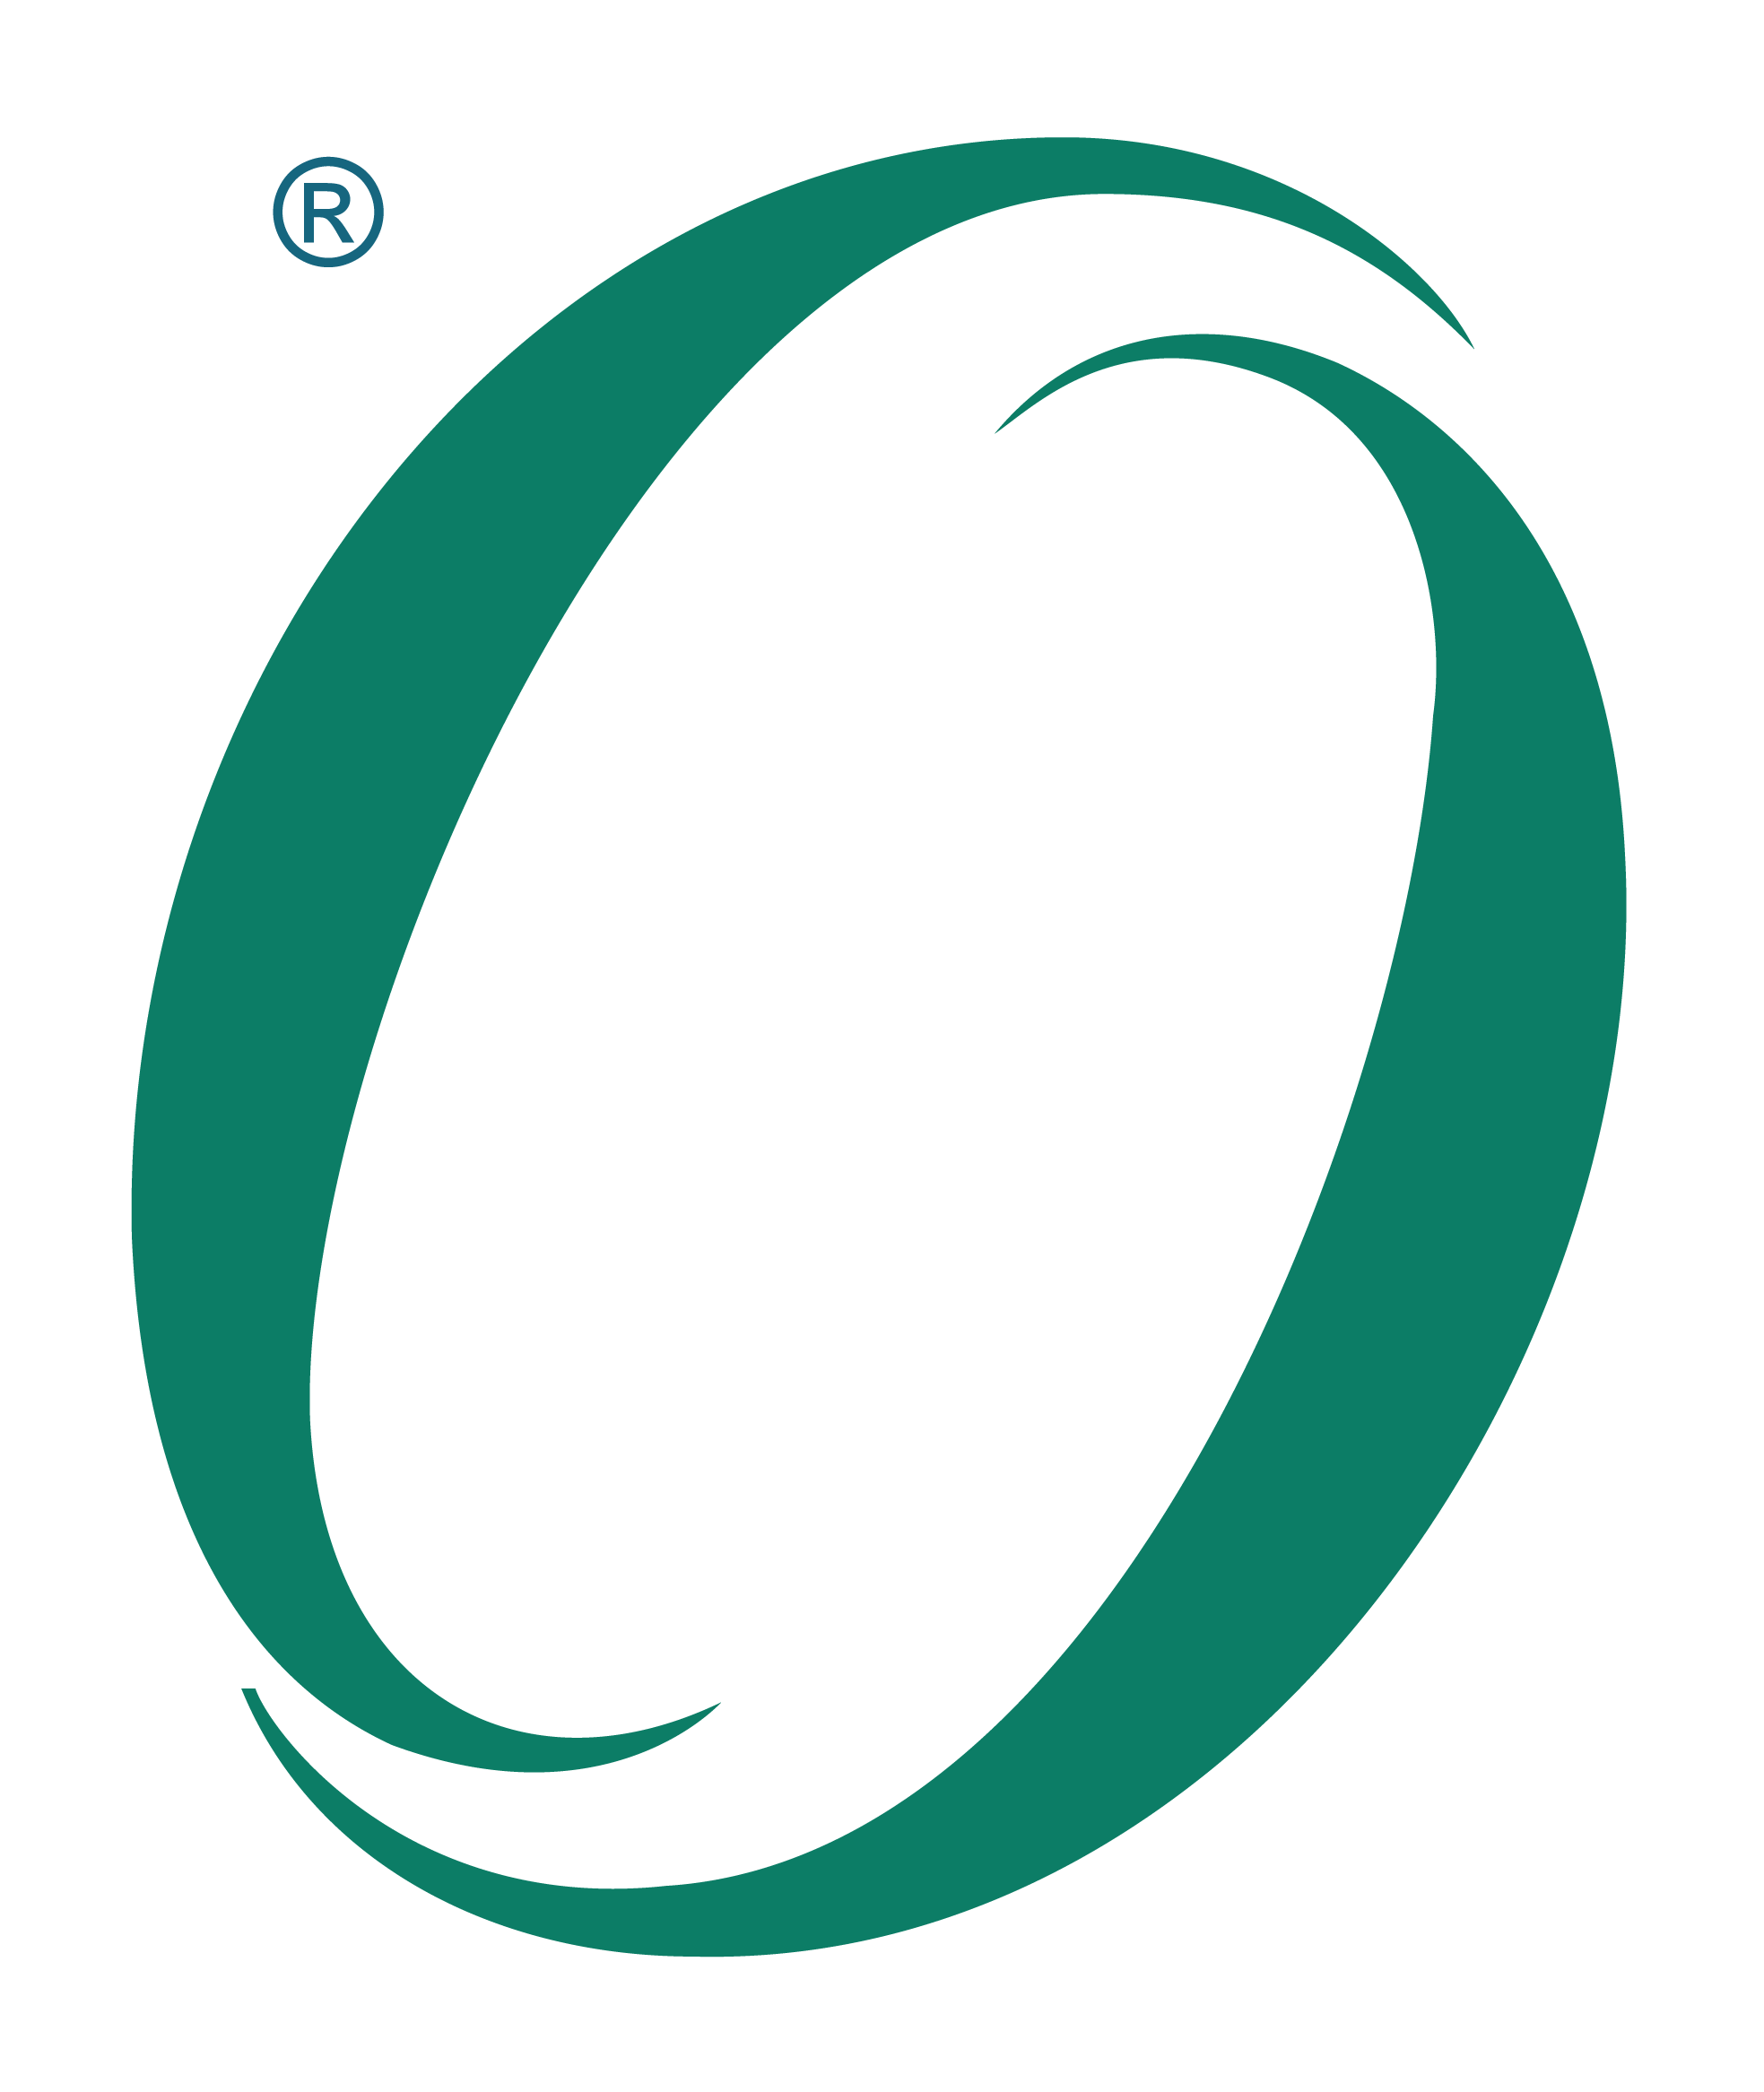 The Open Group Blog Volume 5 Issue 1 (January 2017 – December 2017)